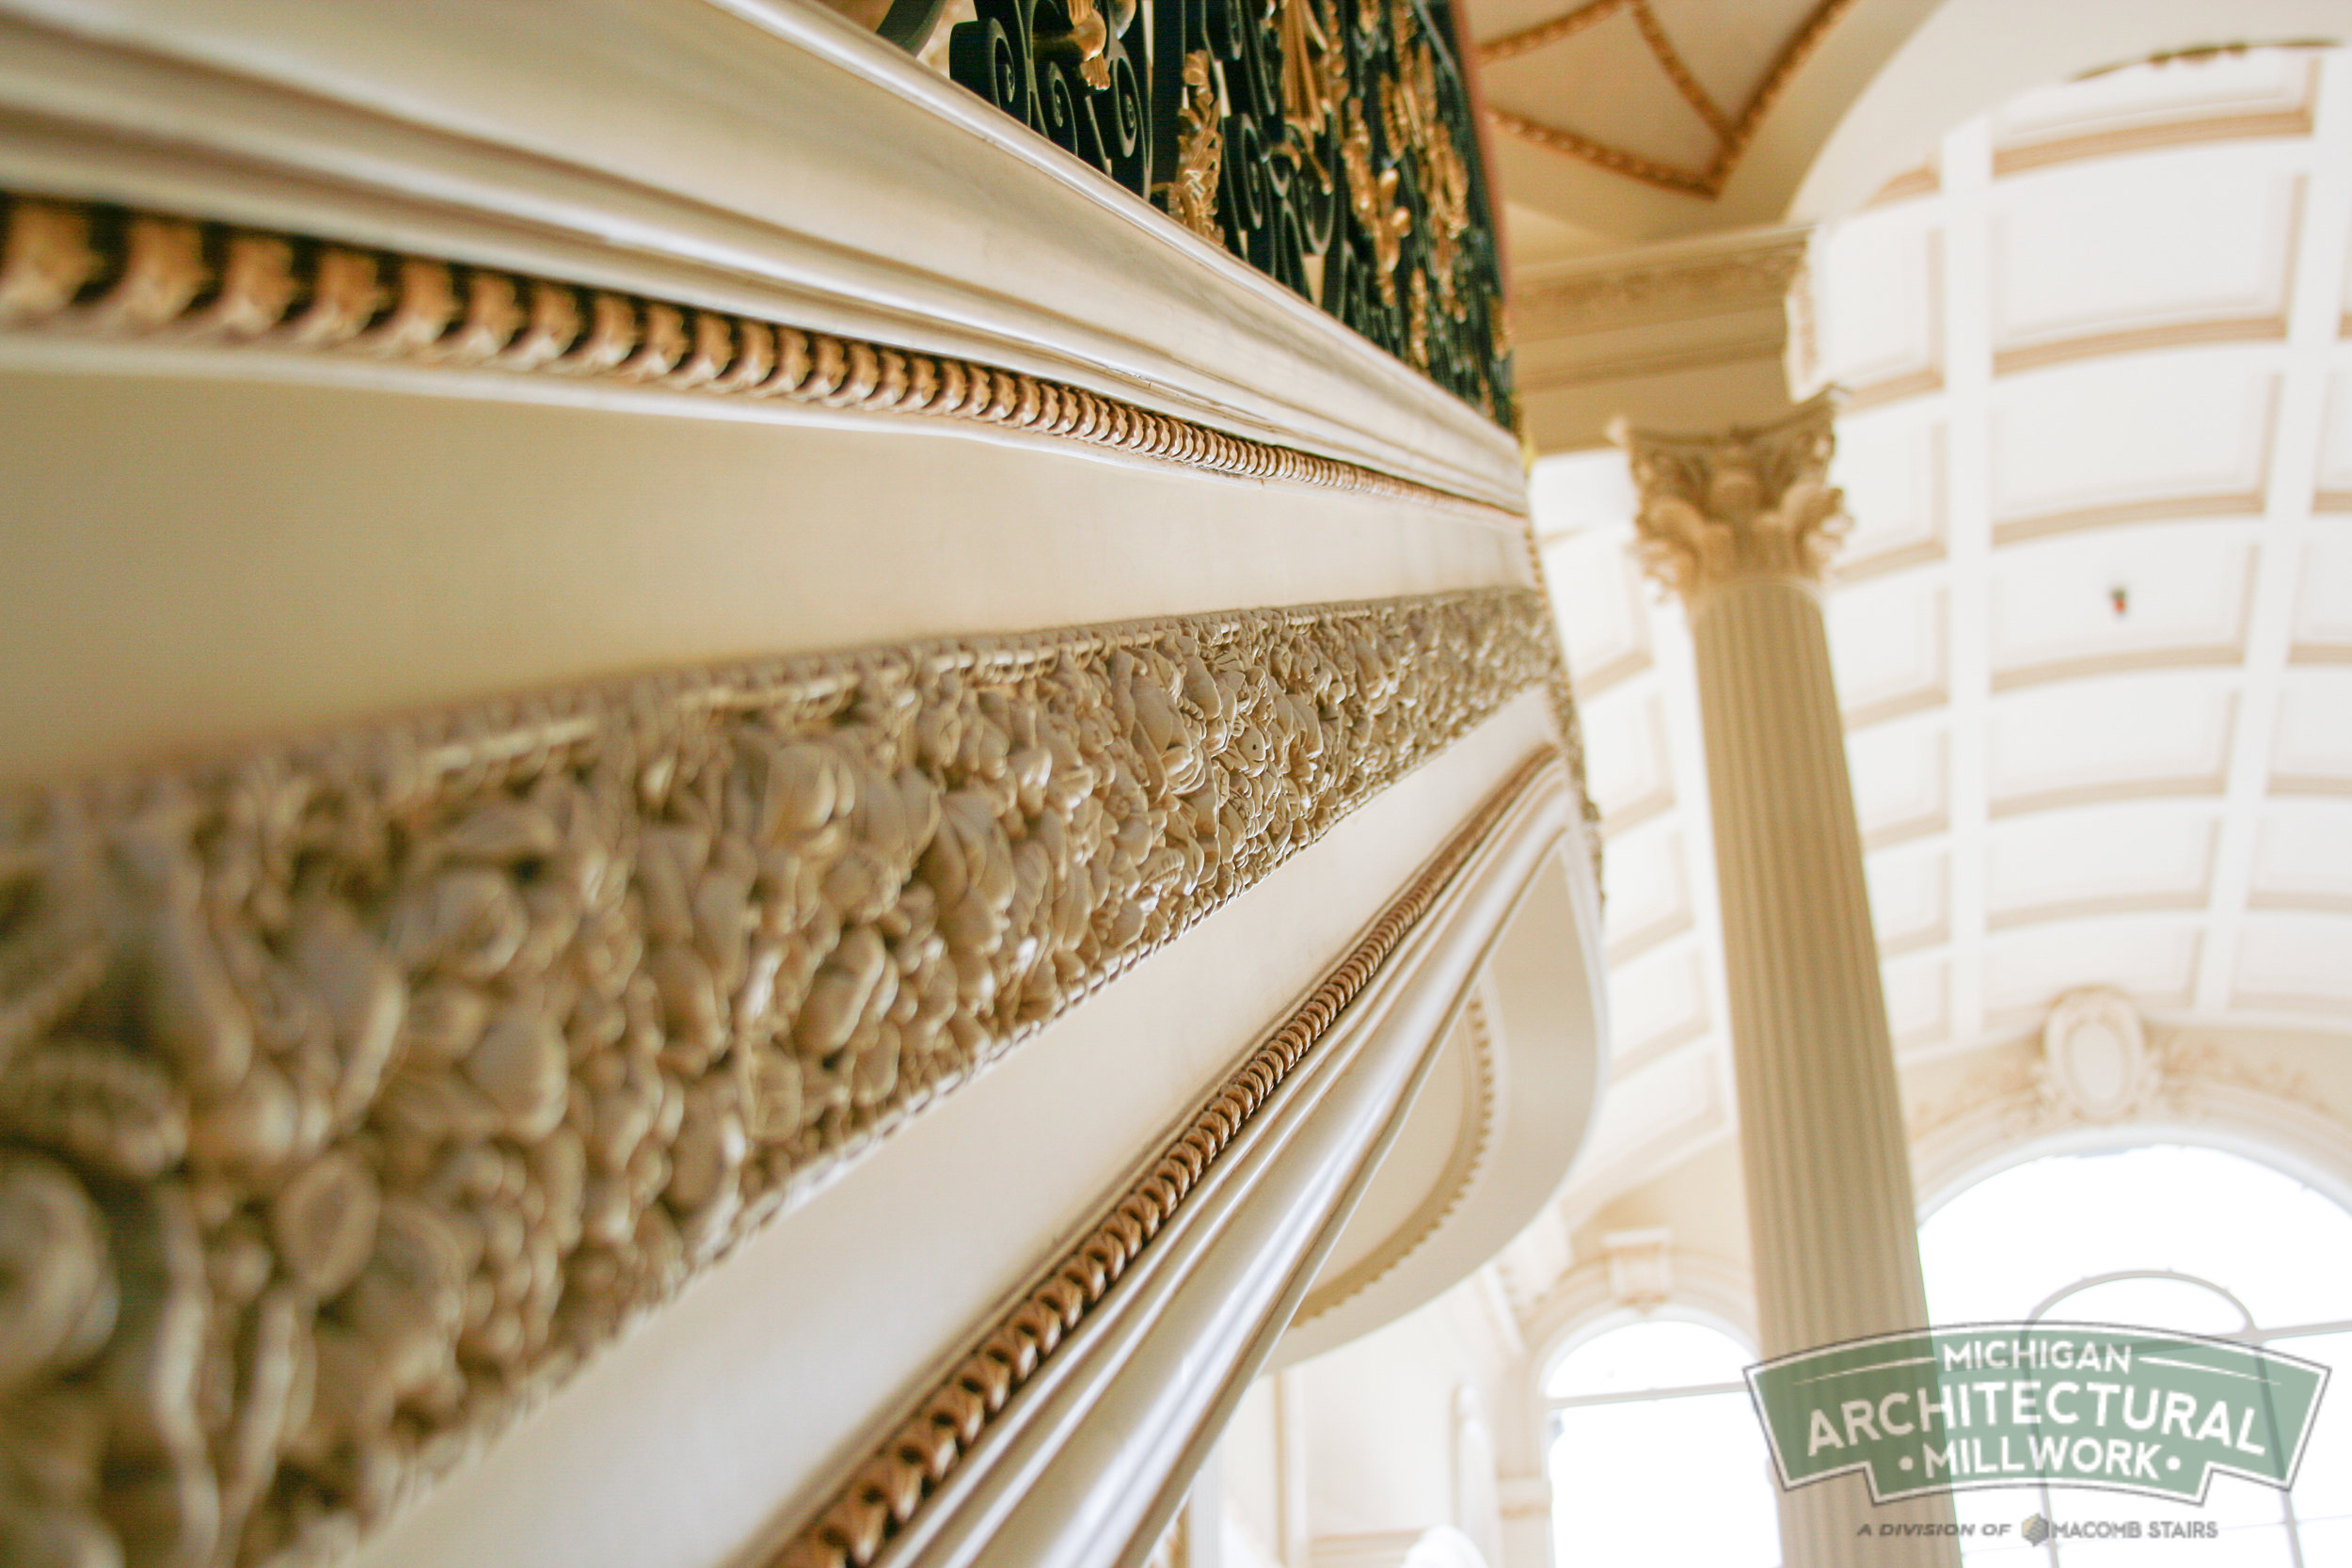 Michigan Architectural Millwork- Moulding and Millwork Photo-122.jpg